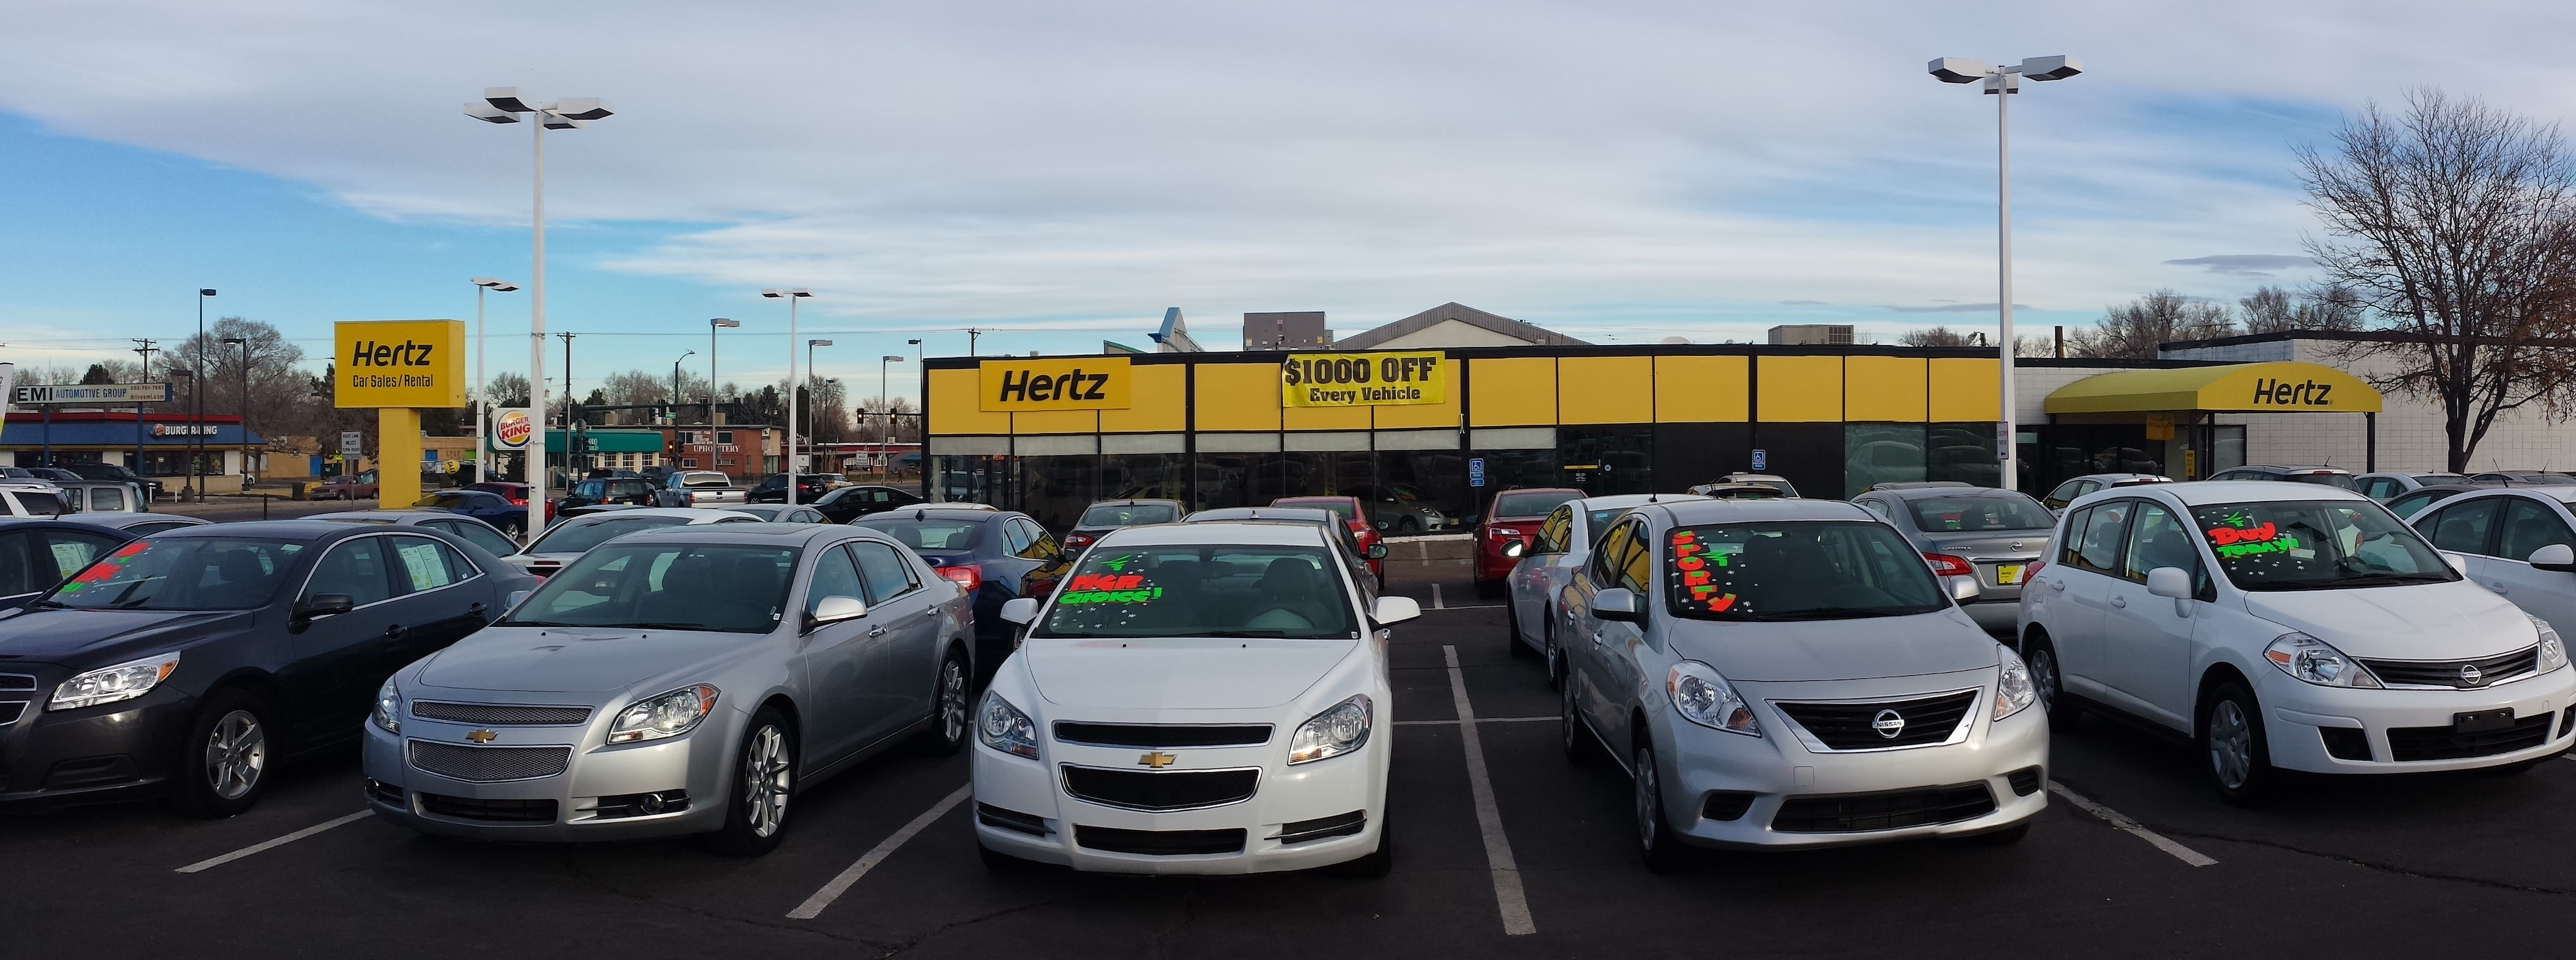 Hertz Car Sales Denver Find Used Cars Near Denver Co